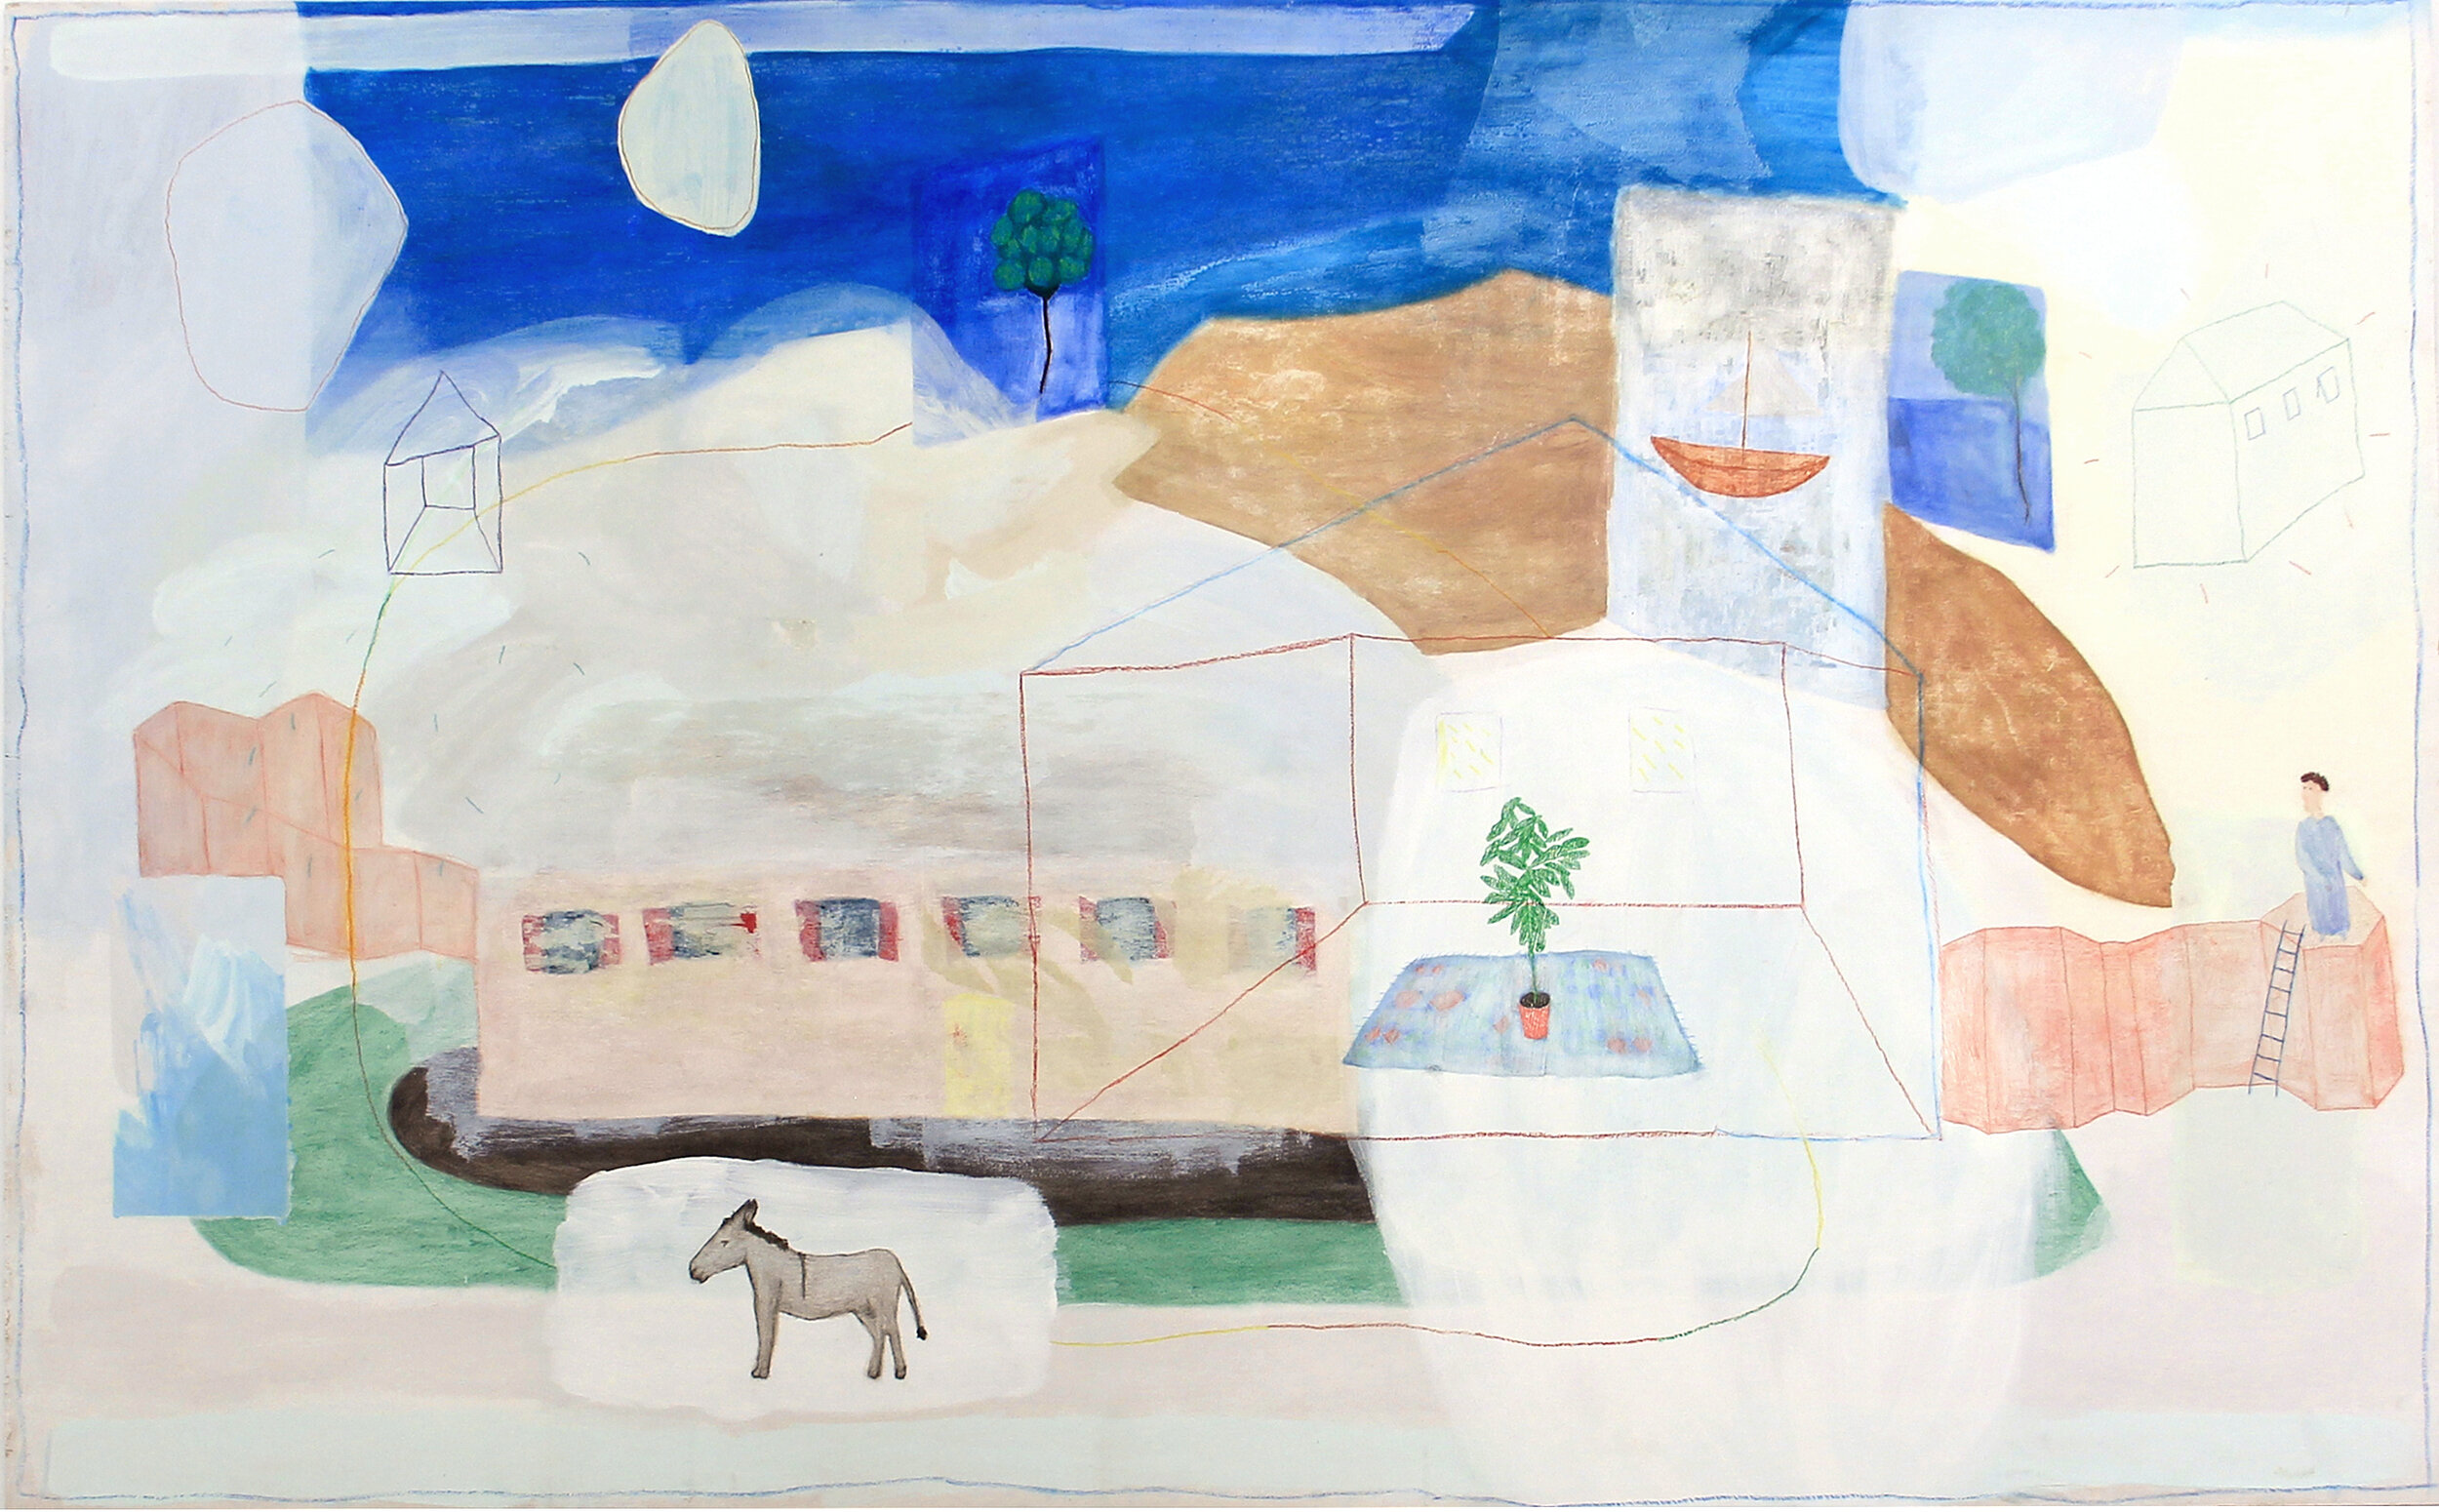 The donkey, the man and the house, 120x240cm, oil and pencil on pannel - copie.jpg